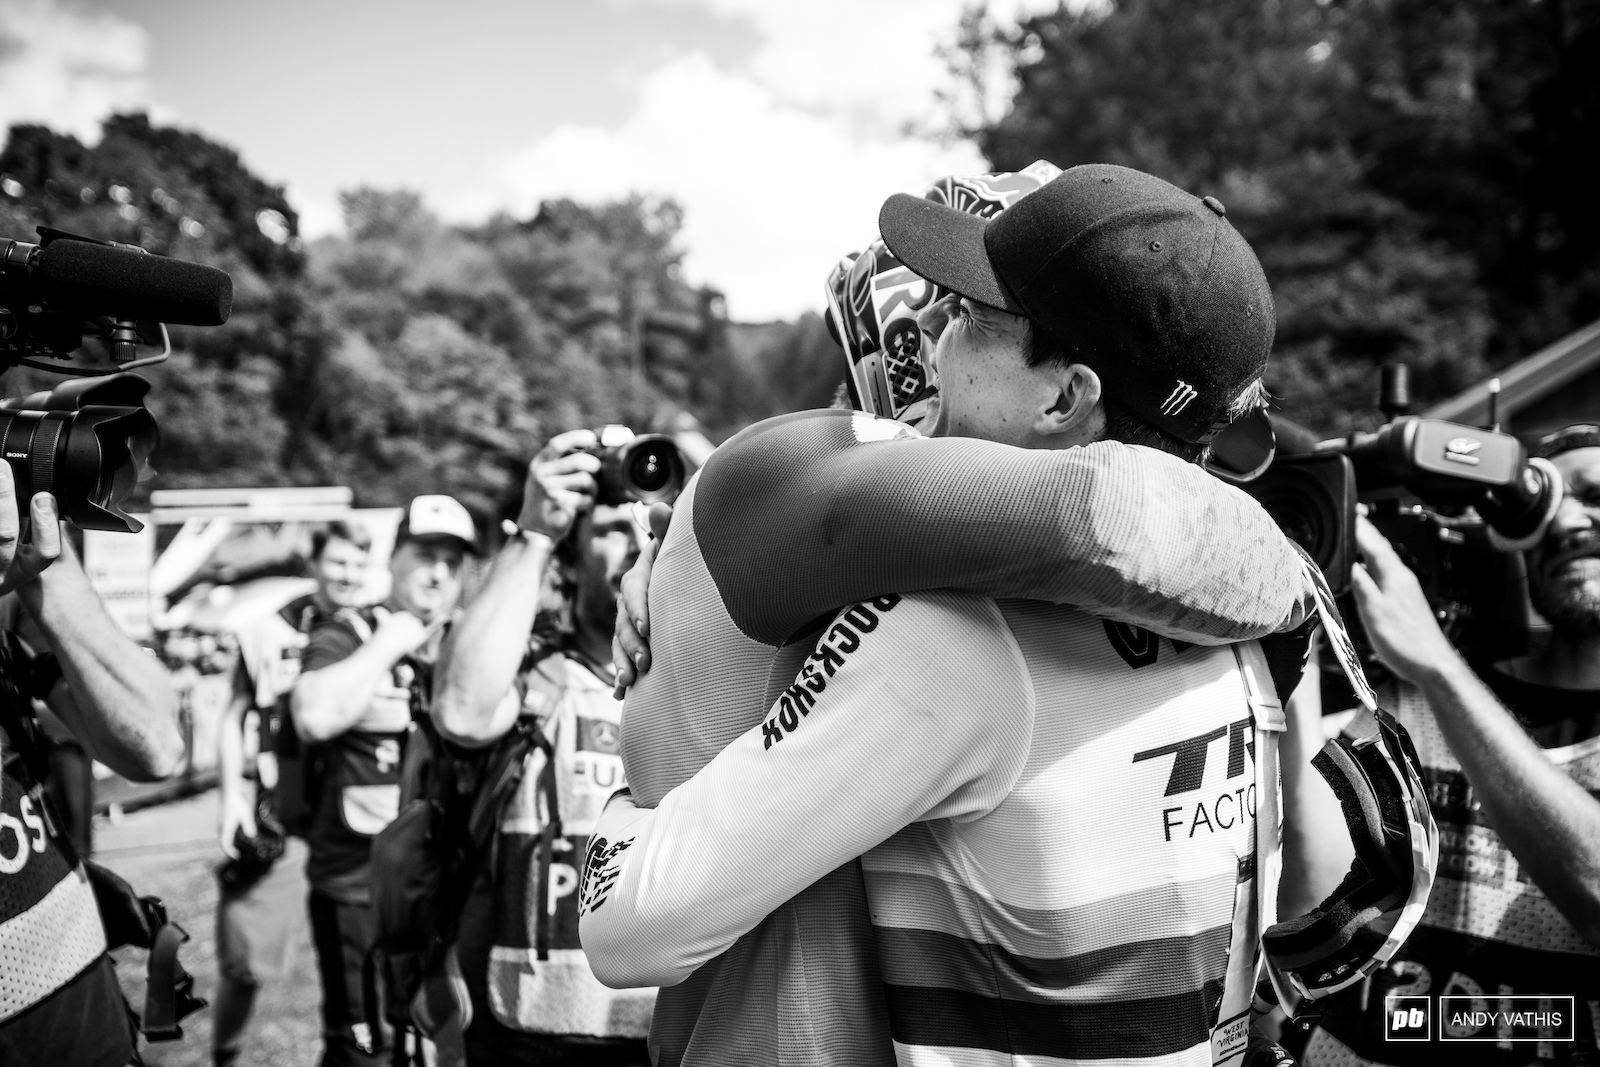 The French sure carry their heart on their sleeves. Bruni shares a moment with Loris as soon as he s lifted from the ground.